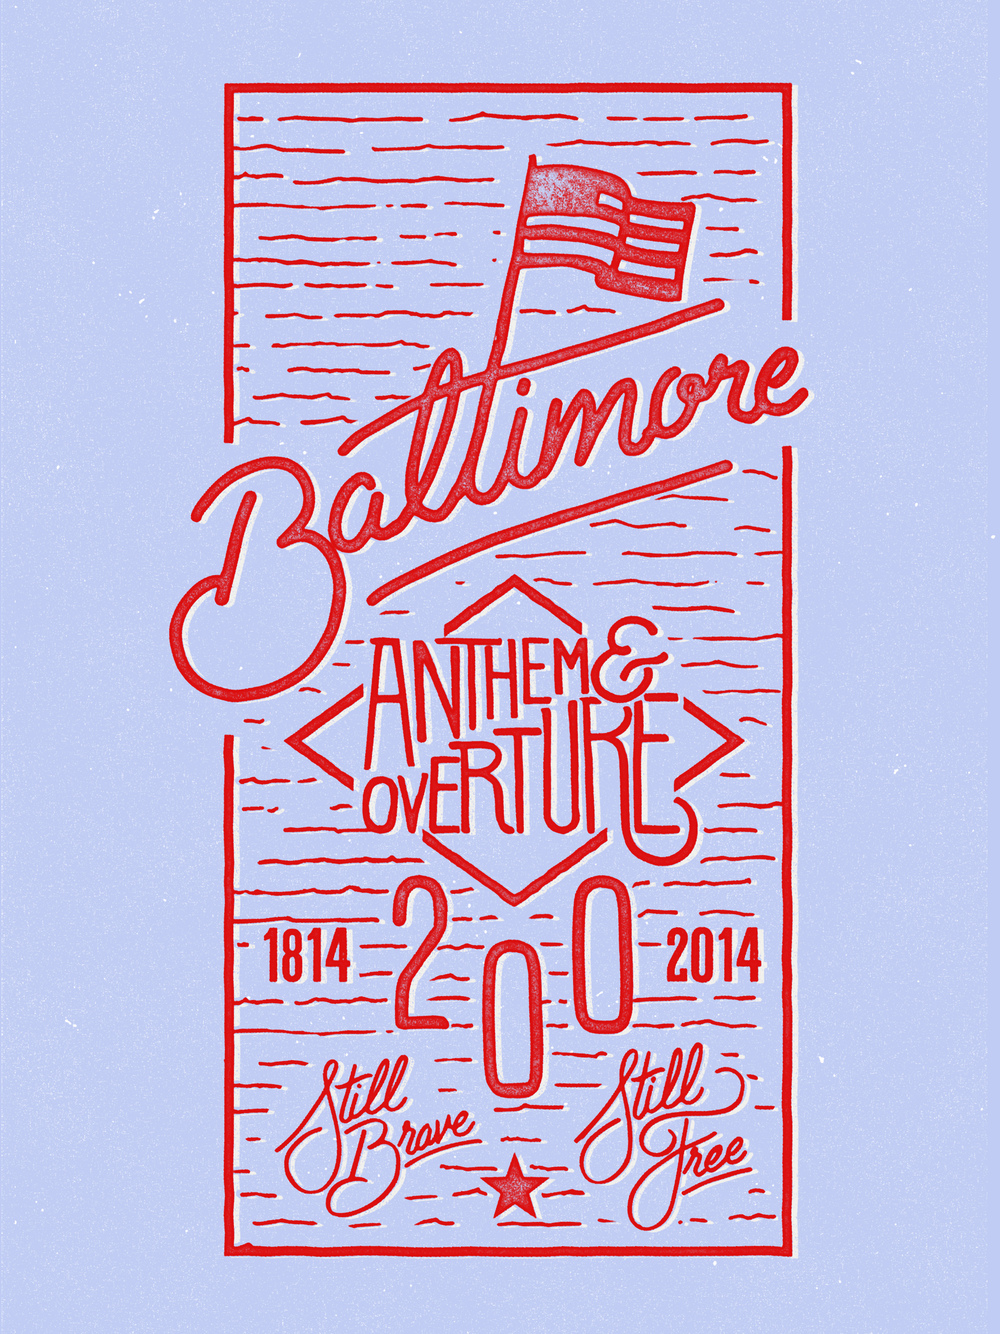 Battle of Baltimore - Red